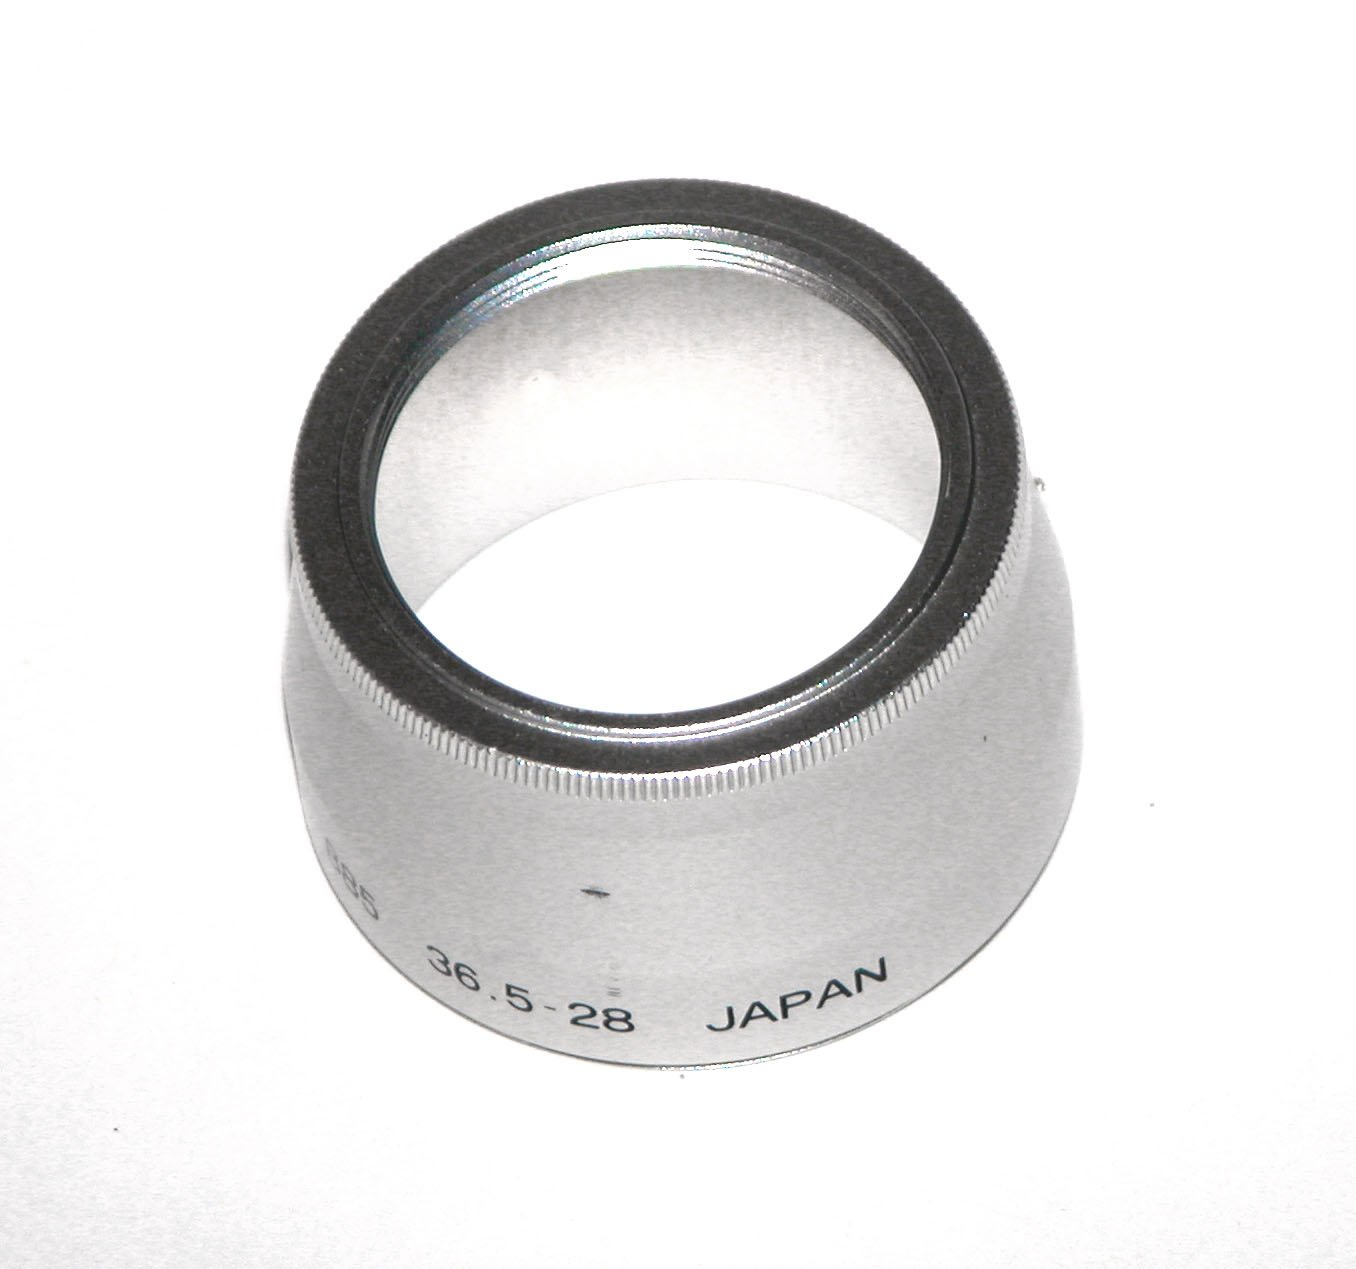 Lens extension Step-Down Tube For Nikon Coolpix 885 4300 Camera 36.5-28mm